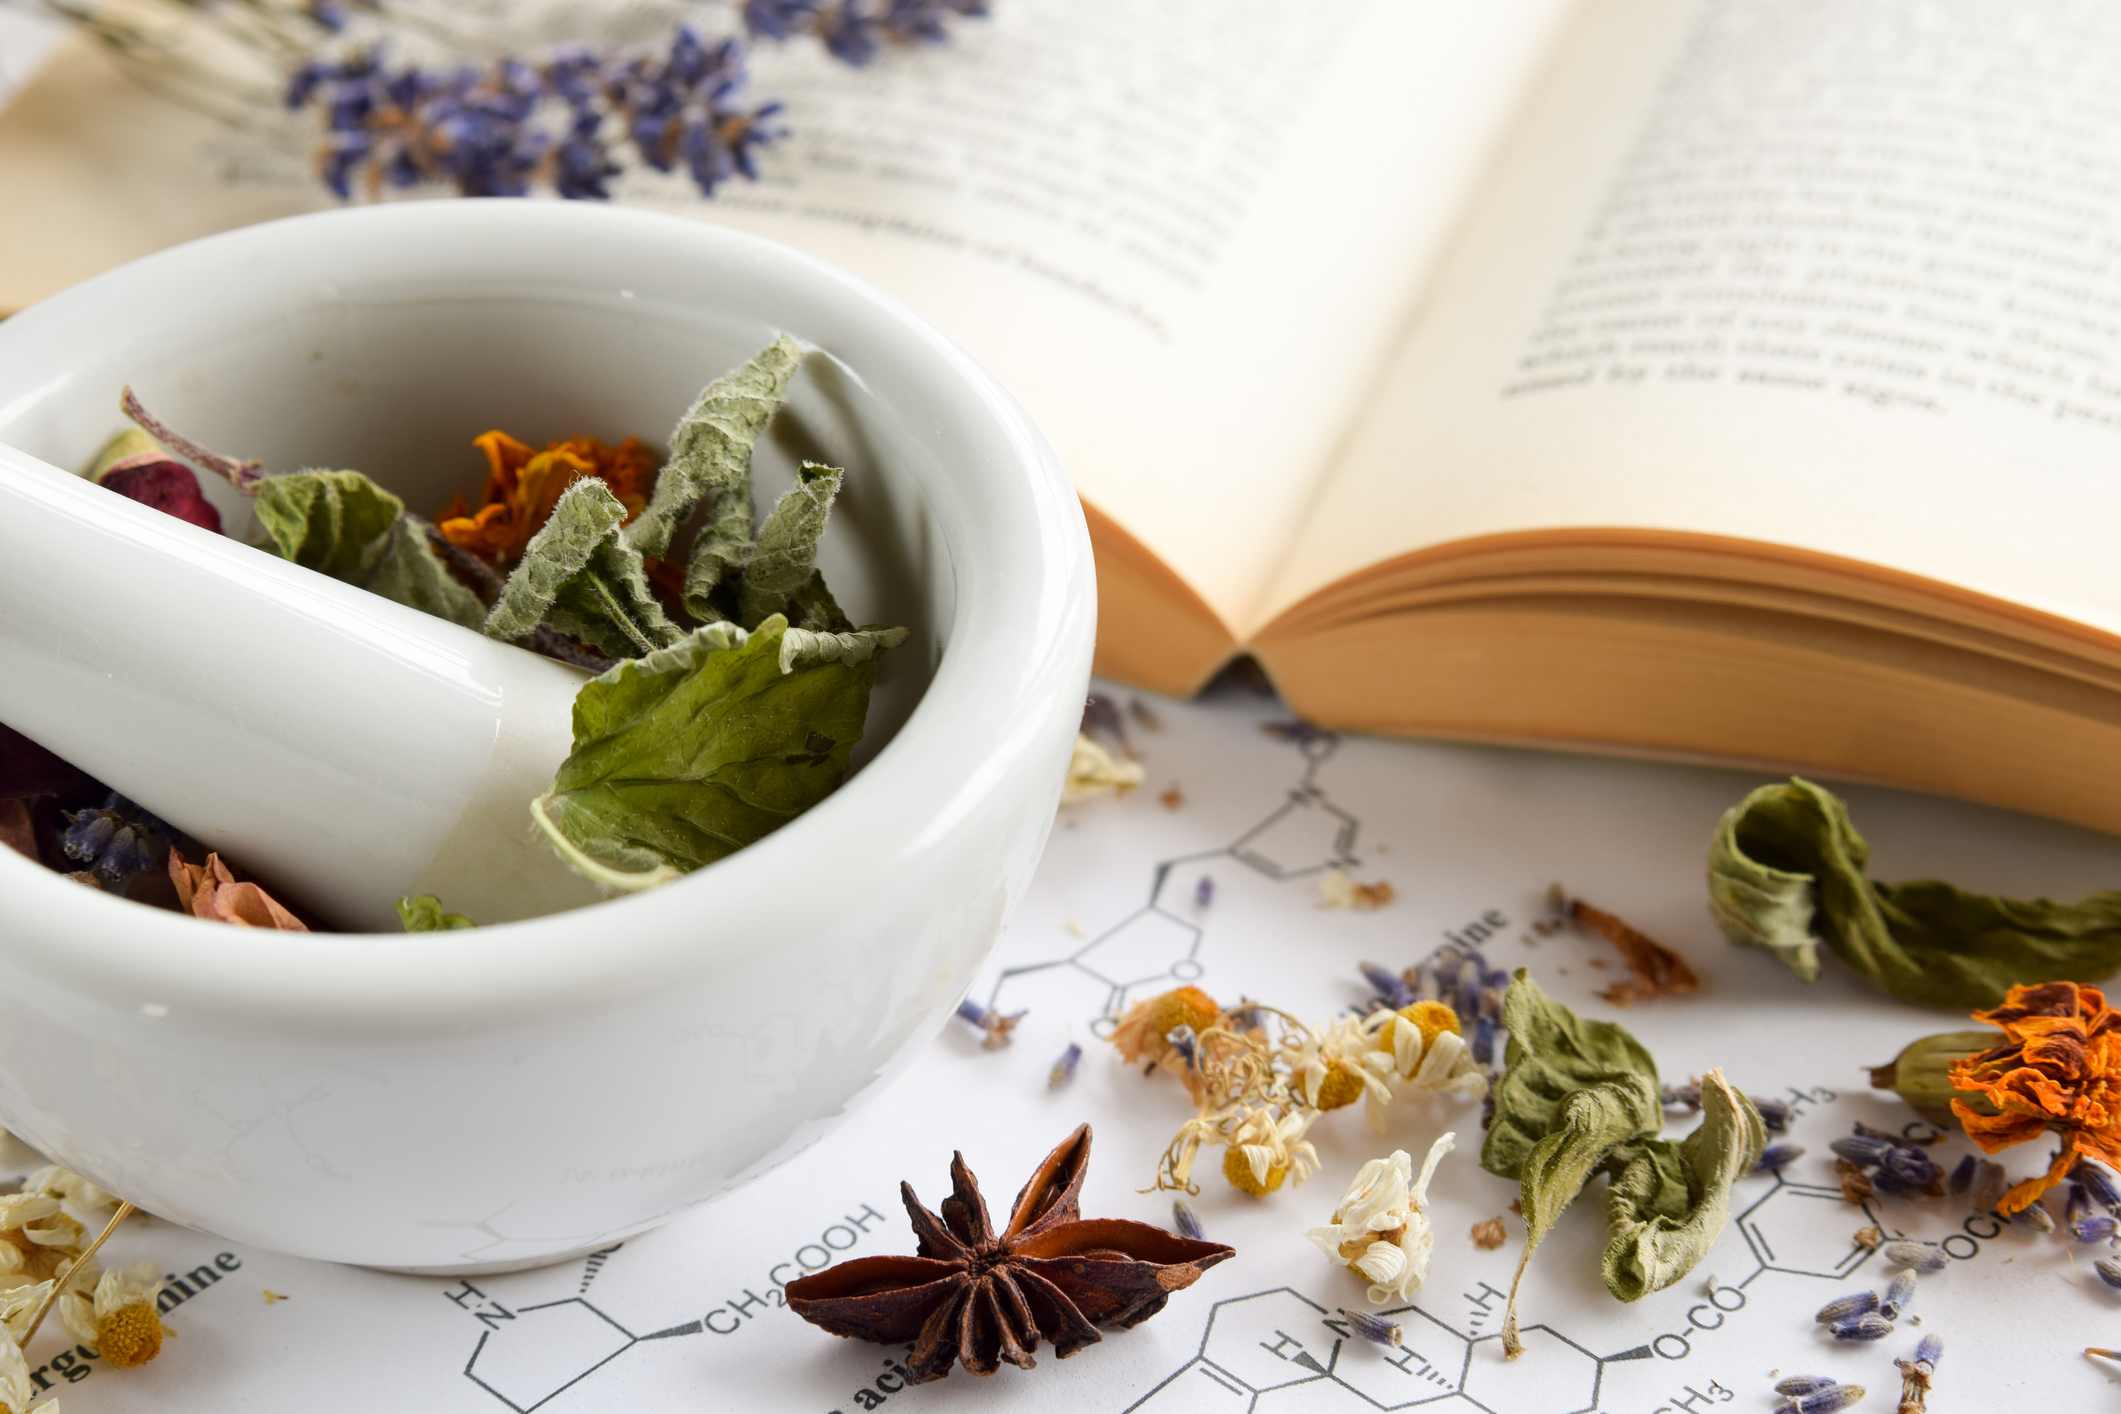 Herbal tea apothecary phytochemicals science research